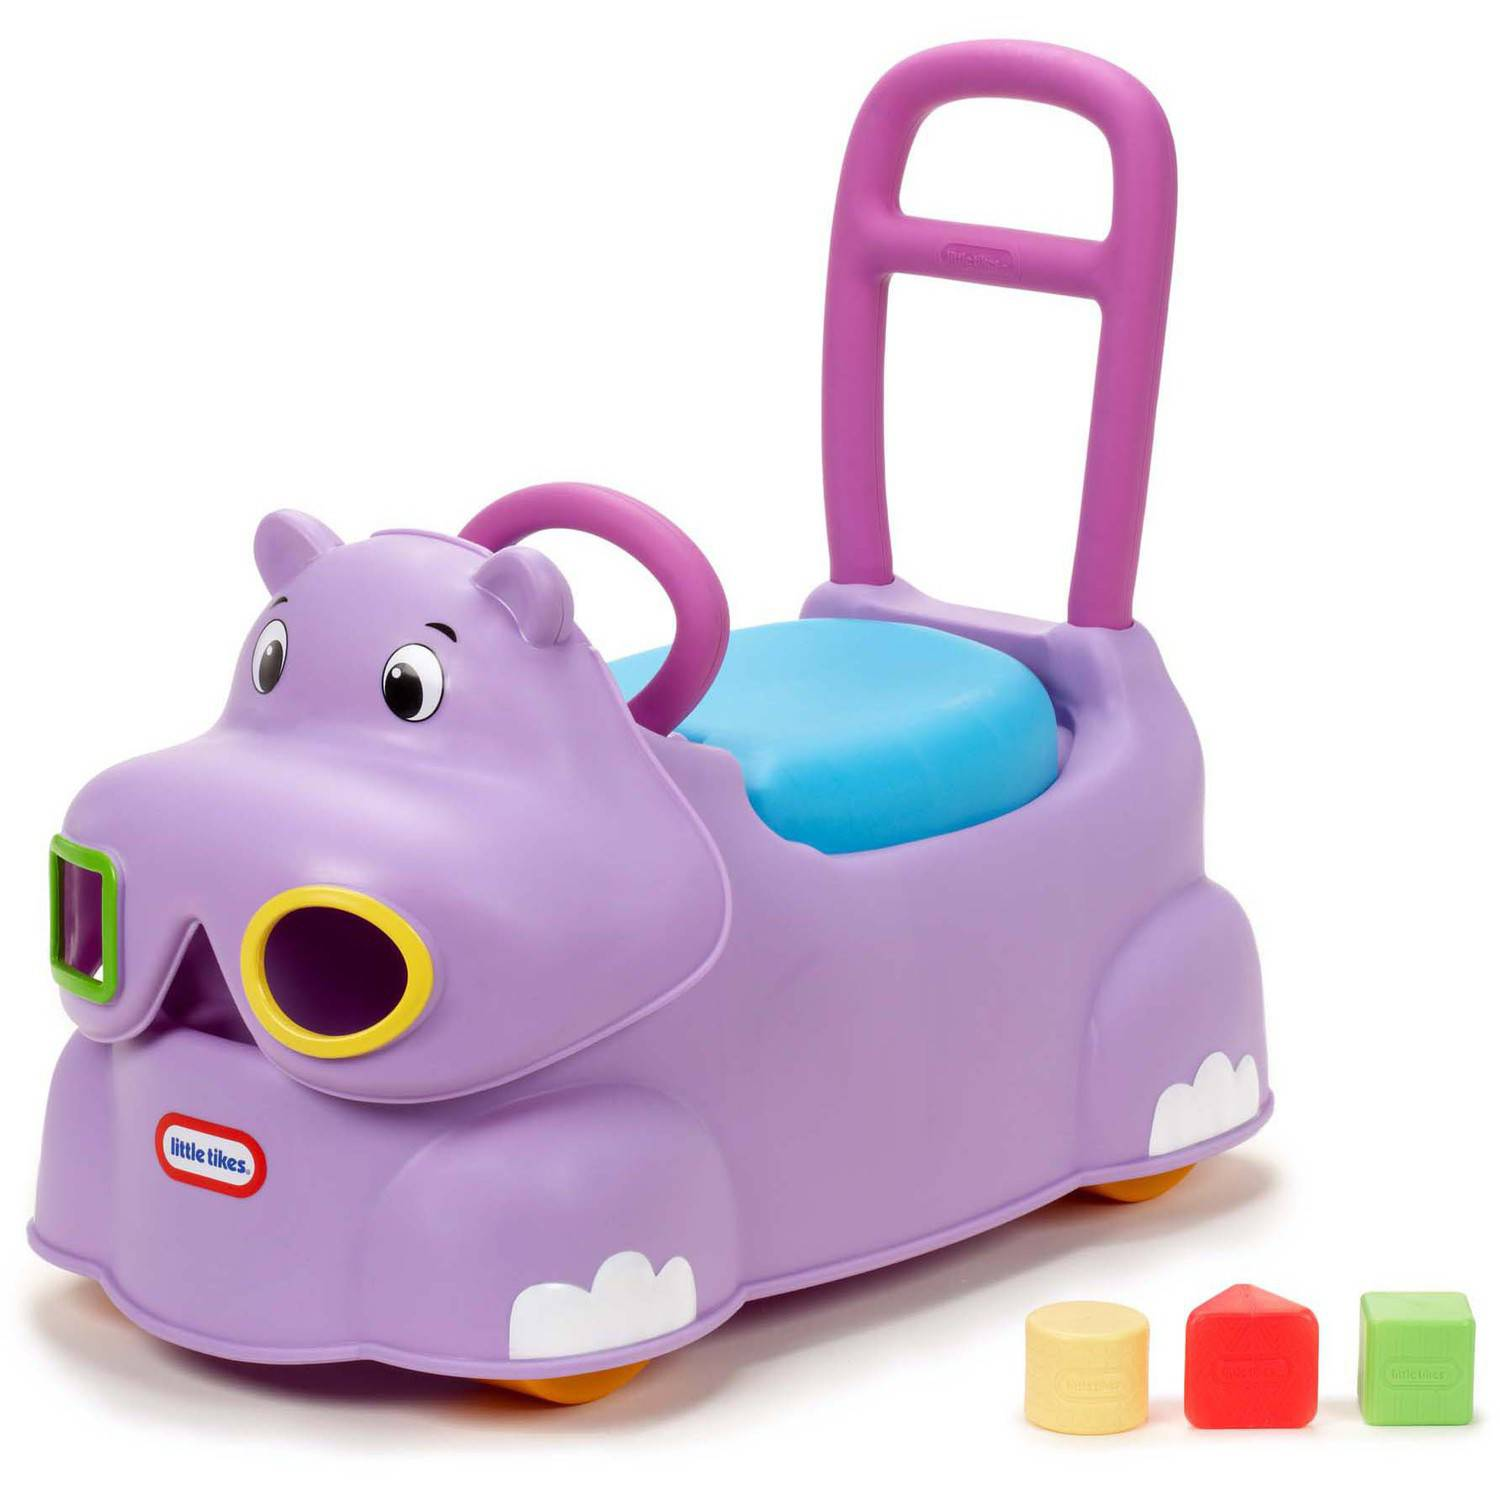 Little Tikes Scoot-Around Animal Riding Toy, Hippo